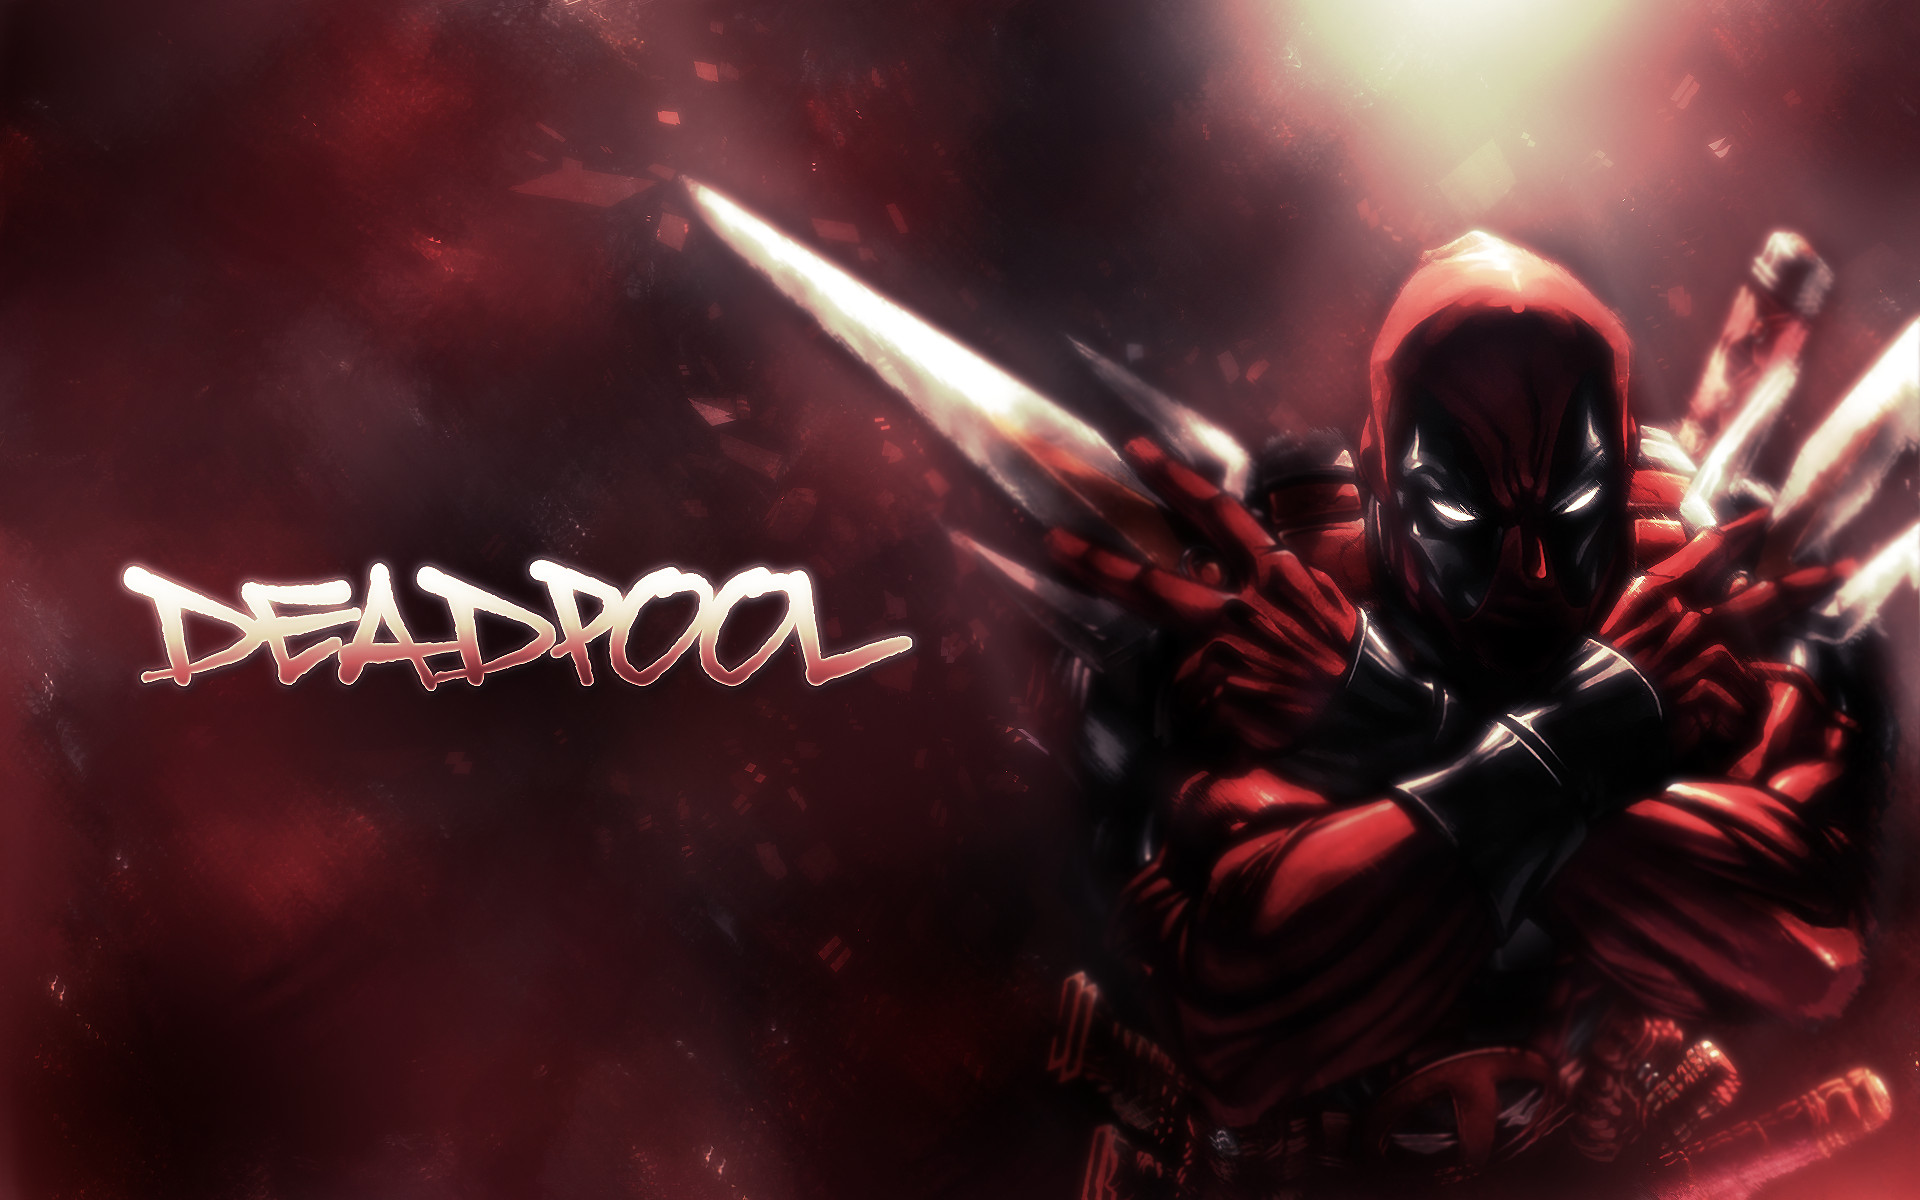 Deadpool Hd wallpaper 214287 1920x1200